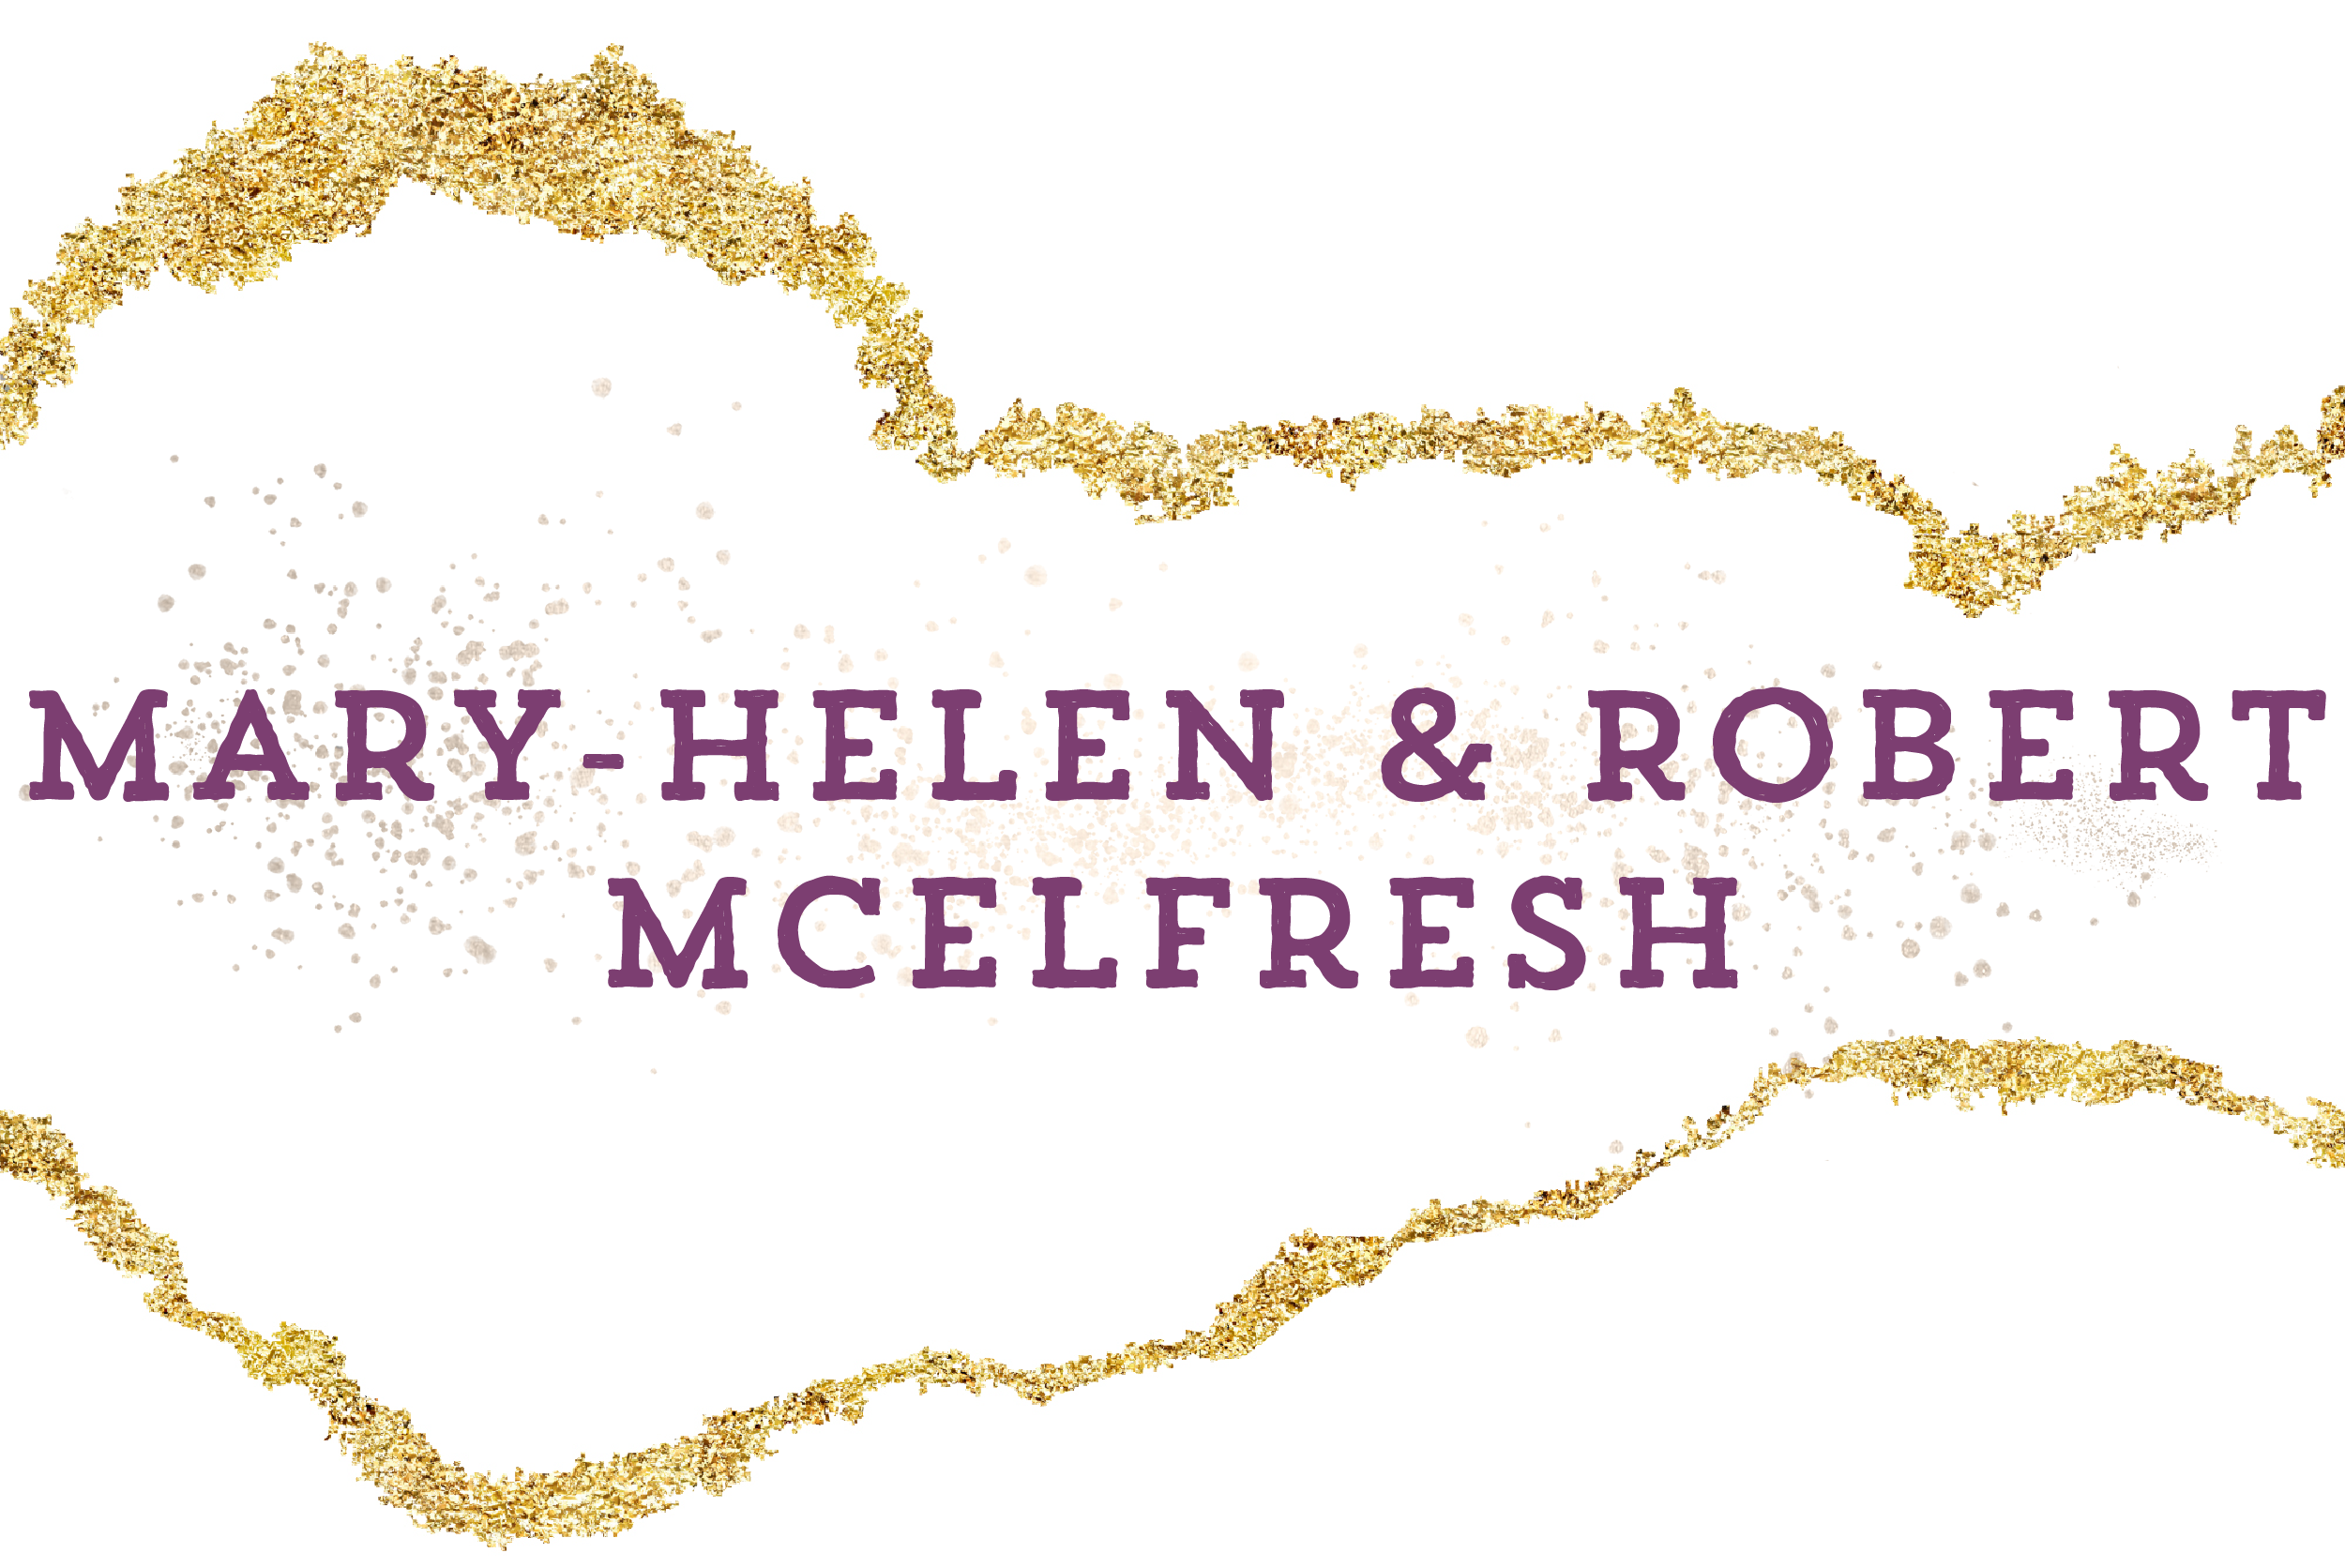 Mary-Helen and Robert McElfresh sponsors